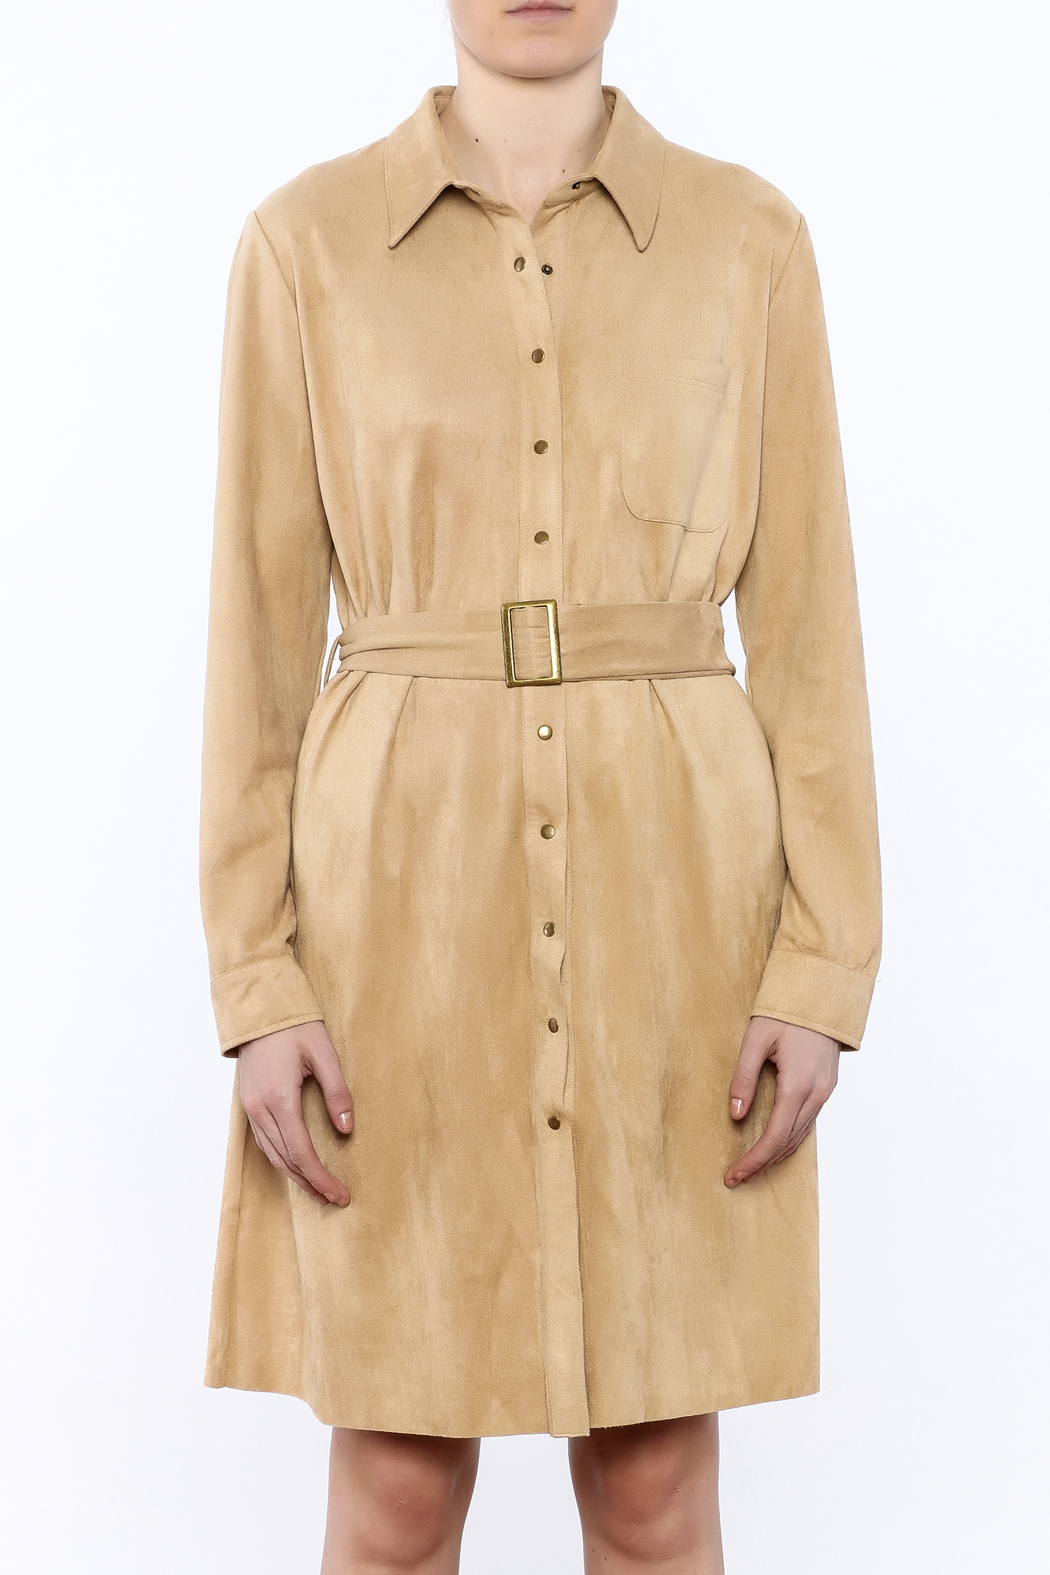 JOH Faux Suede Button-Down Dress - Side Cropped Image